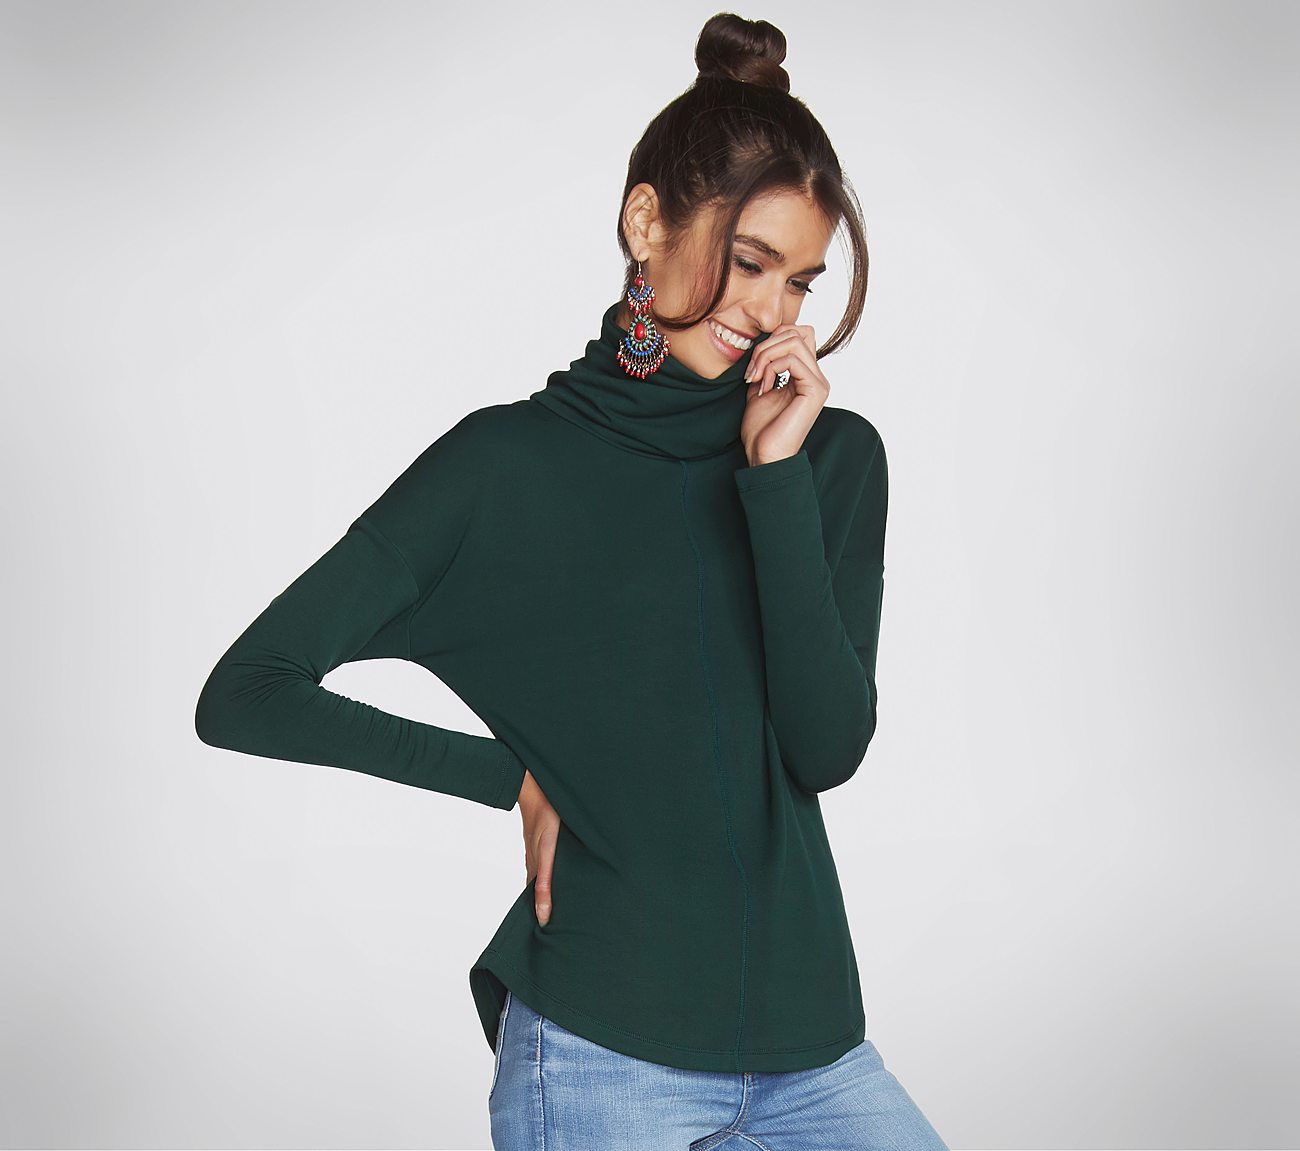 Skechers Apparel Downtime Pullover